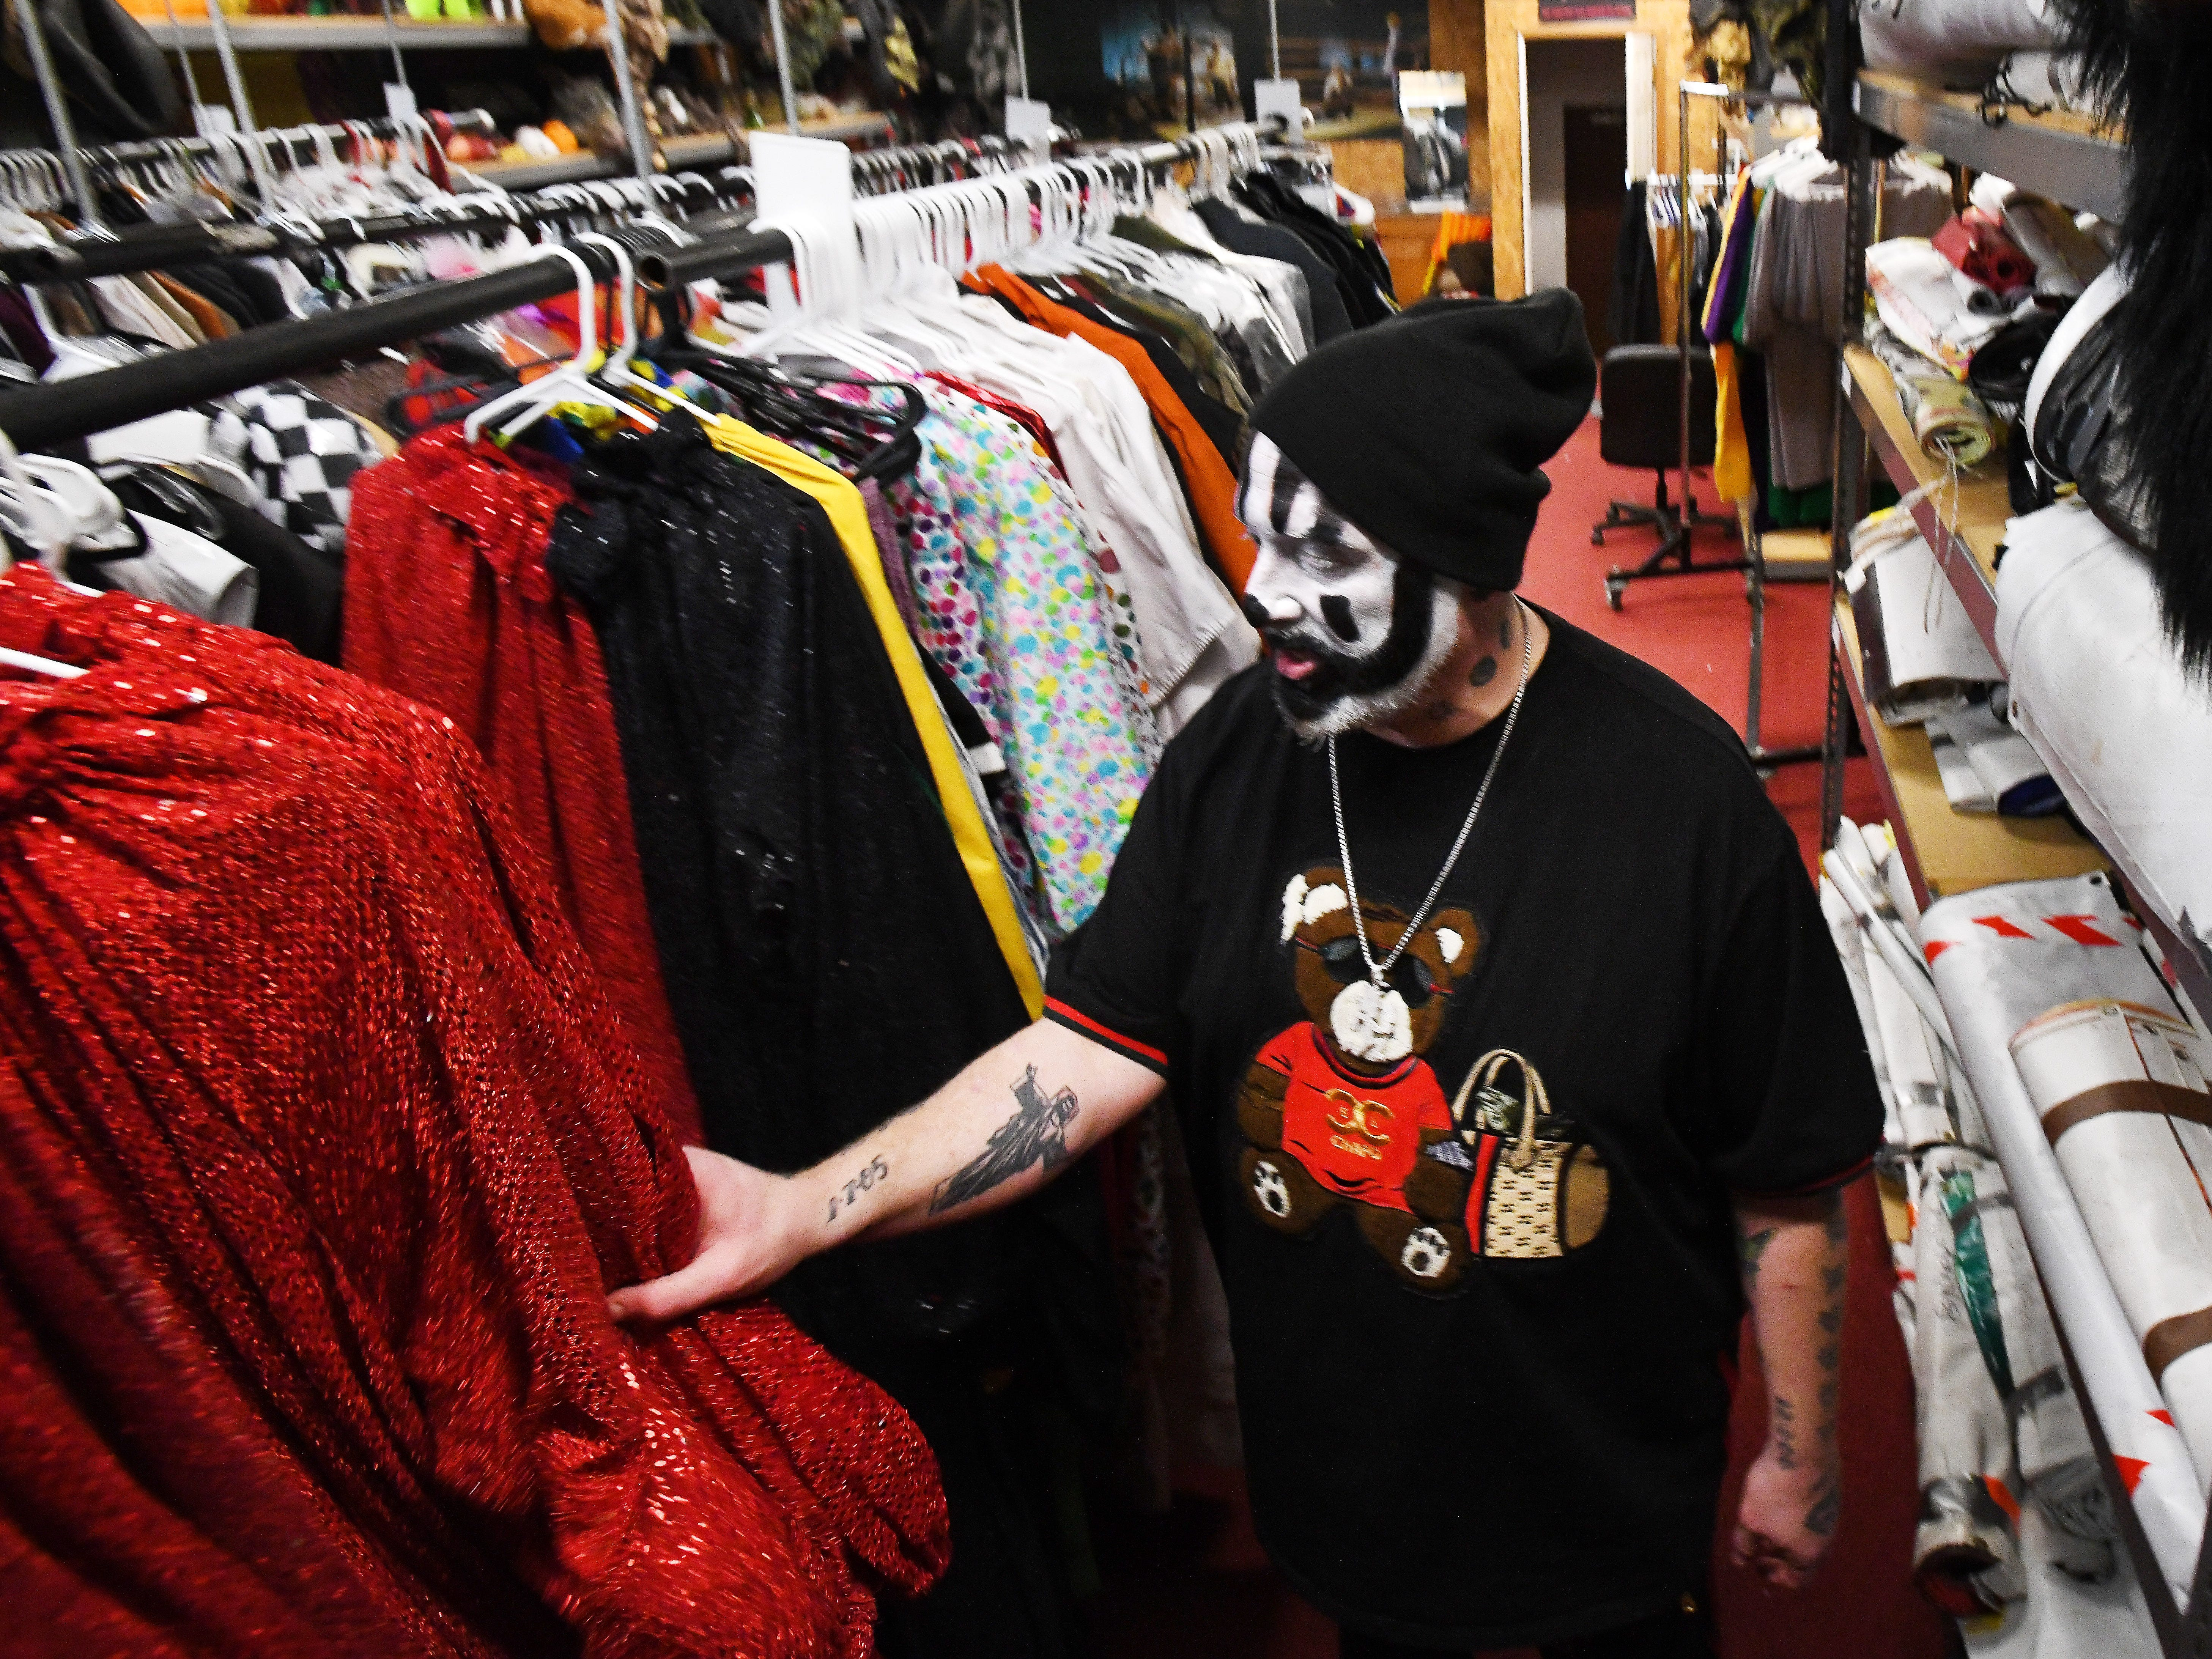 Violent J, aka Joseph Bruce of Insane Clown Posse, shows where outfits and various paraphernalia from their elaborate shows and tours are stored.